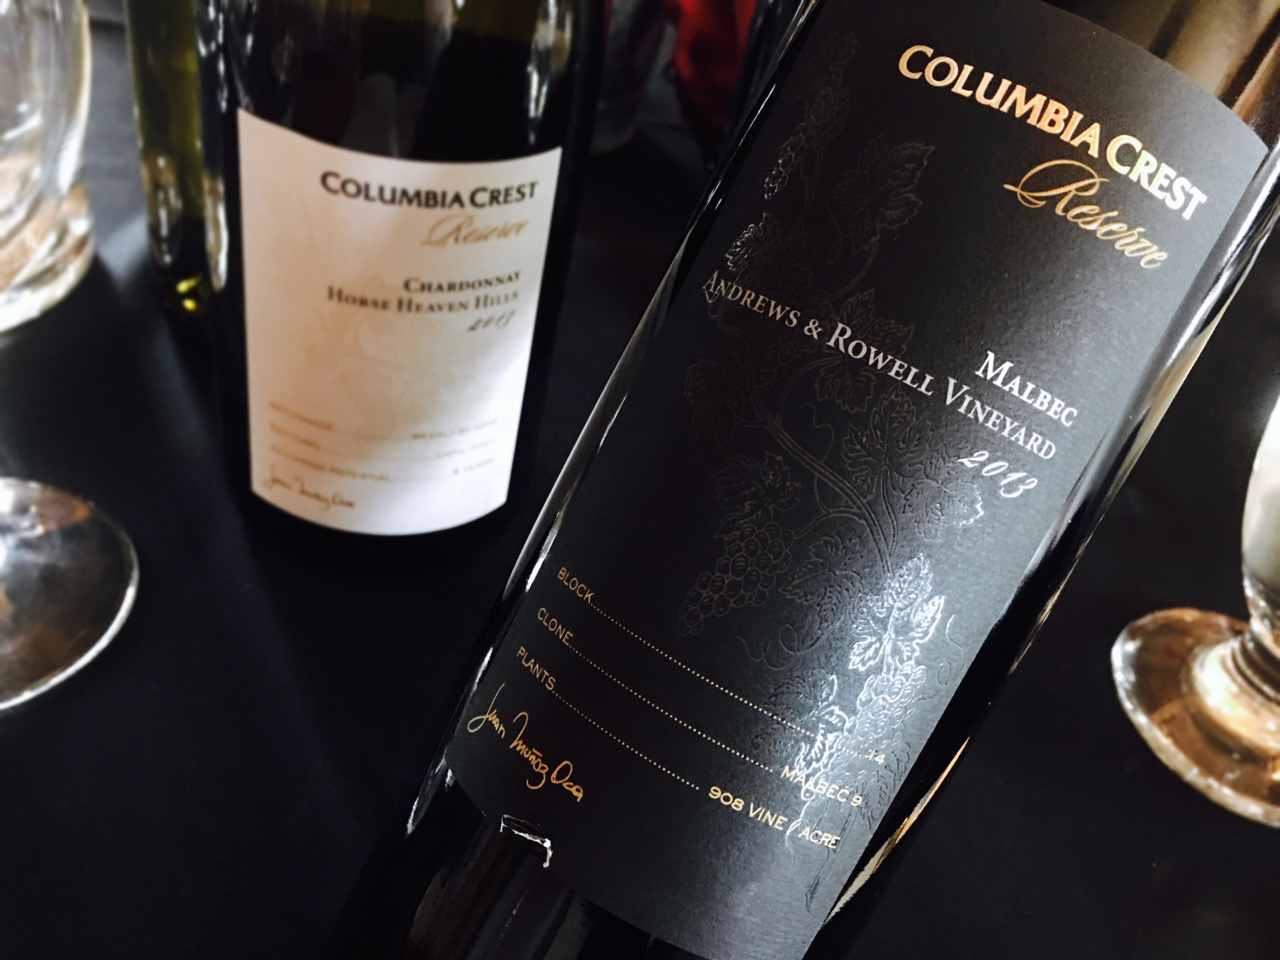 2013 Columbia Crest Reserve Malbec Andrews & Rowell Vineyard Columbia Valley